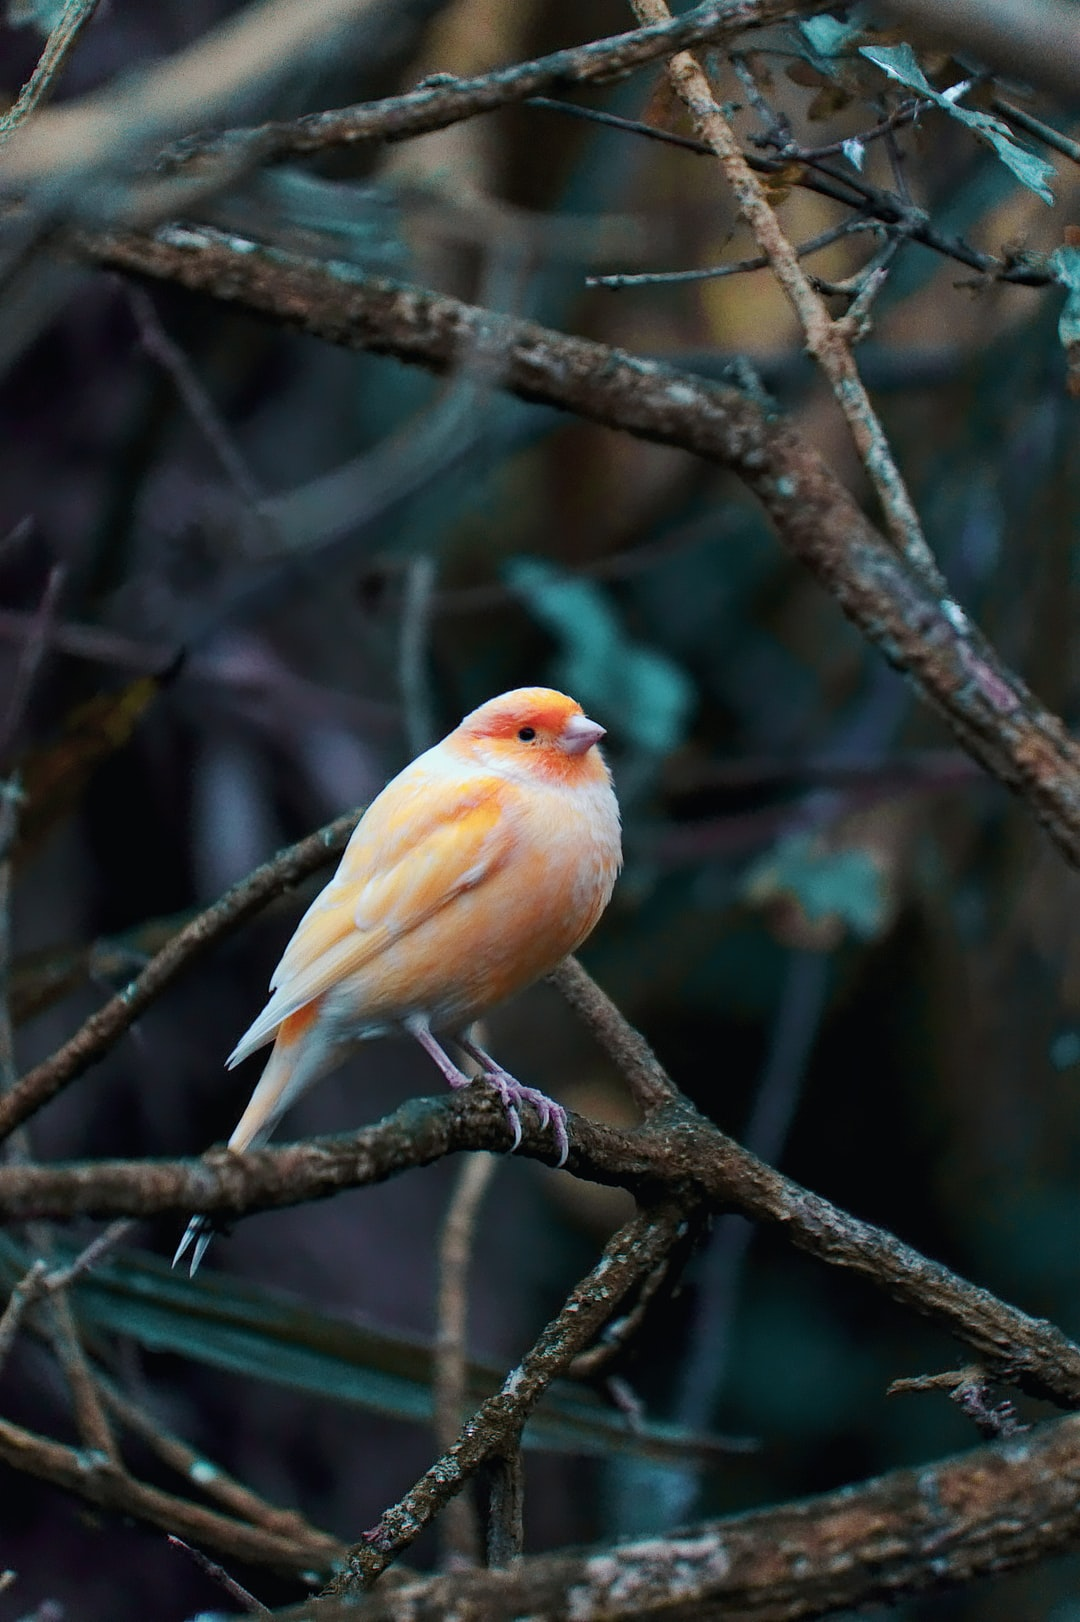 I took this on a cold November morning in a public bird aviary, as a result this canary looks pretty fluffy trying to keep warm. I love how it's bright feathers contrast with the dark tree branches around it!